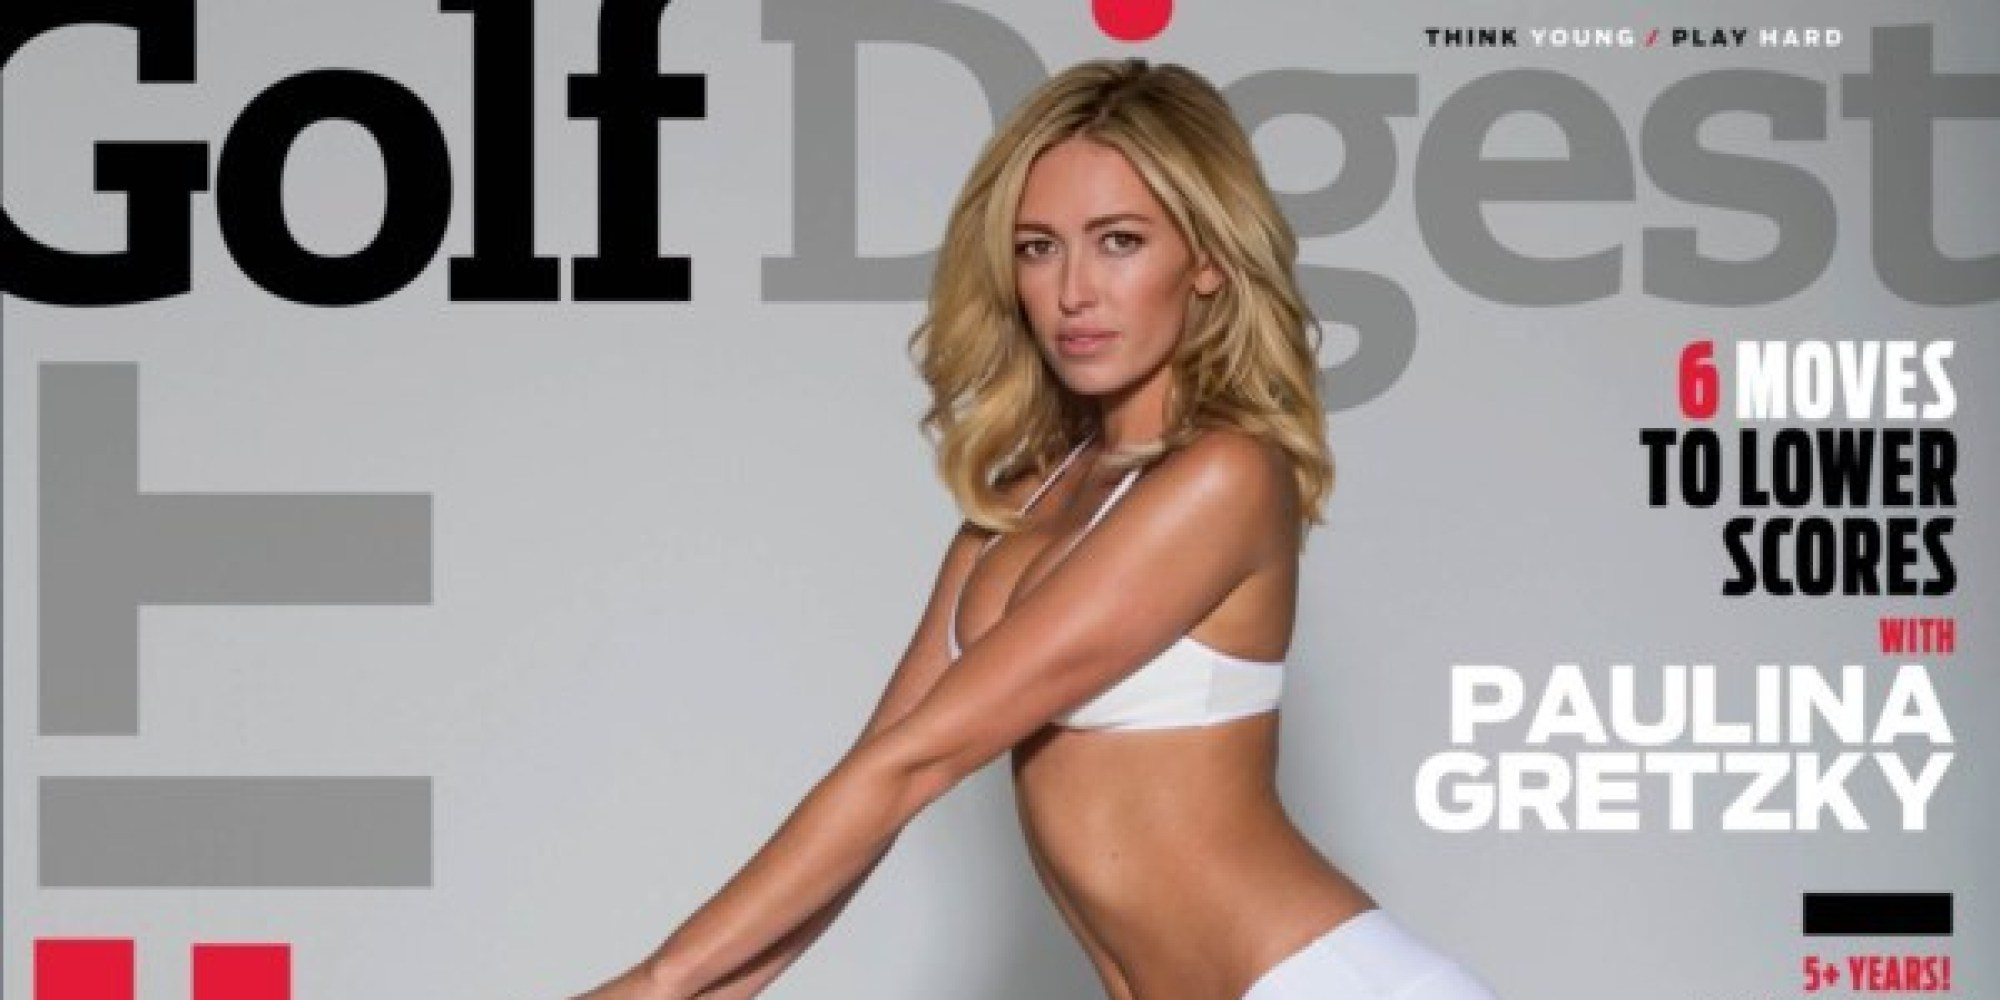 paulina gretzky instagram photos